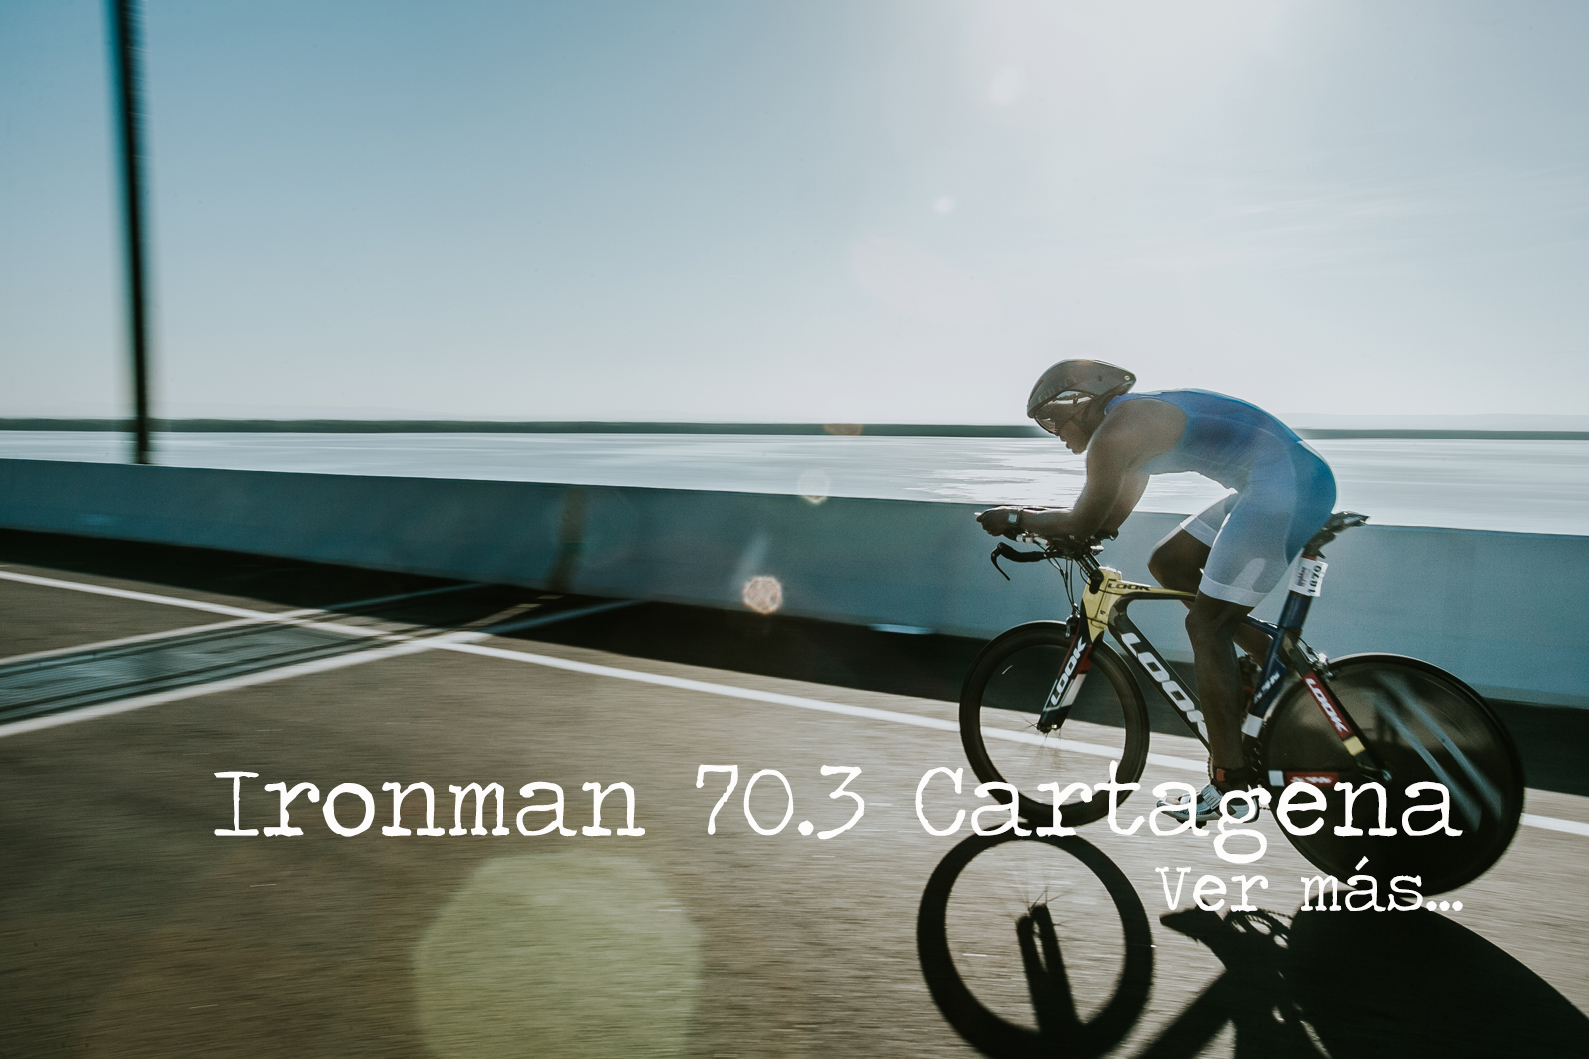 Ironman 70.3 Cartagenas